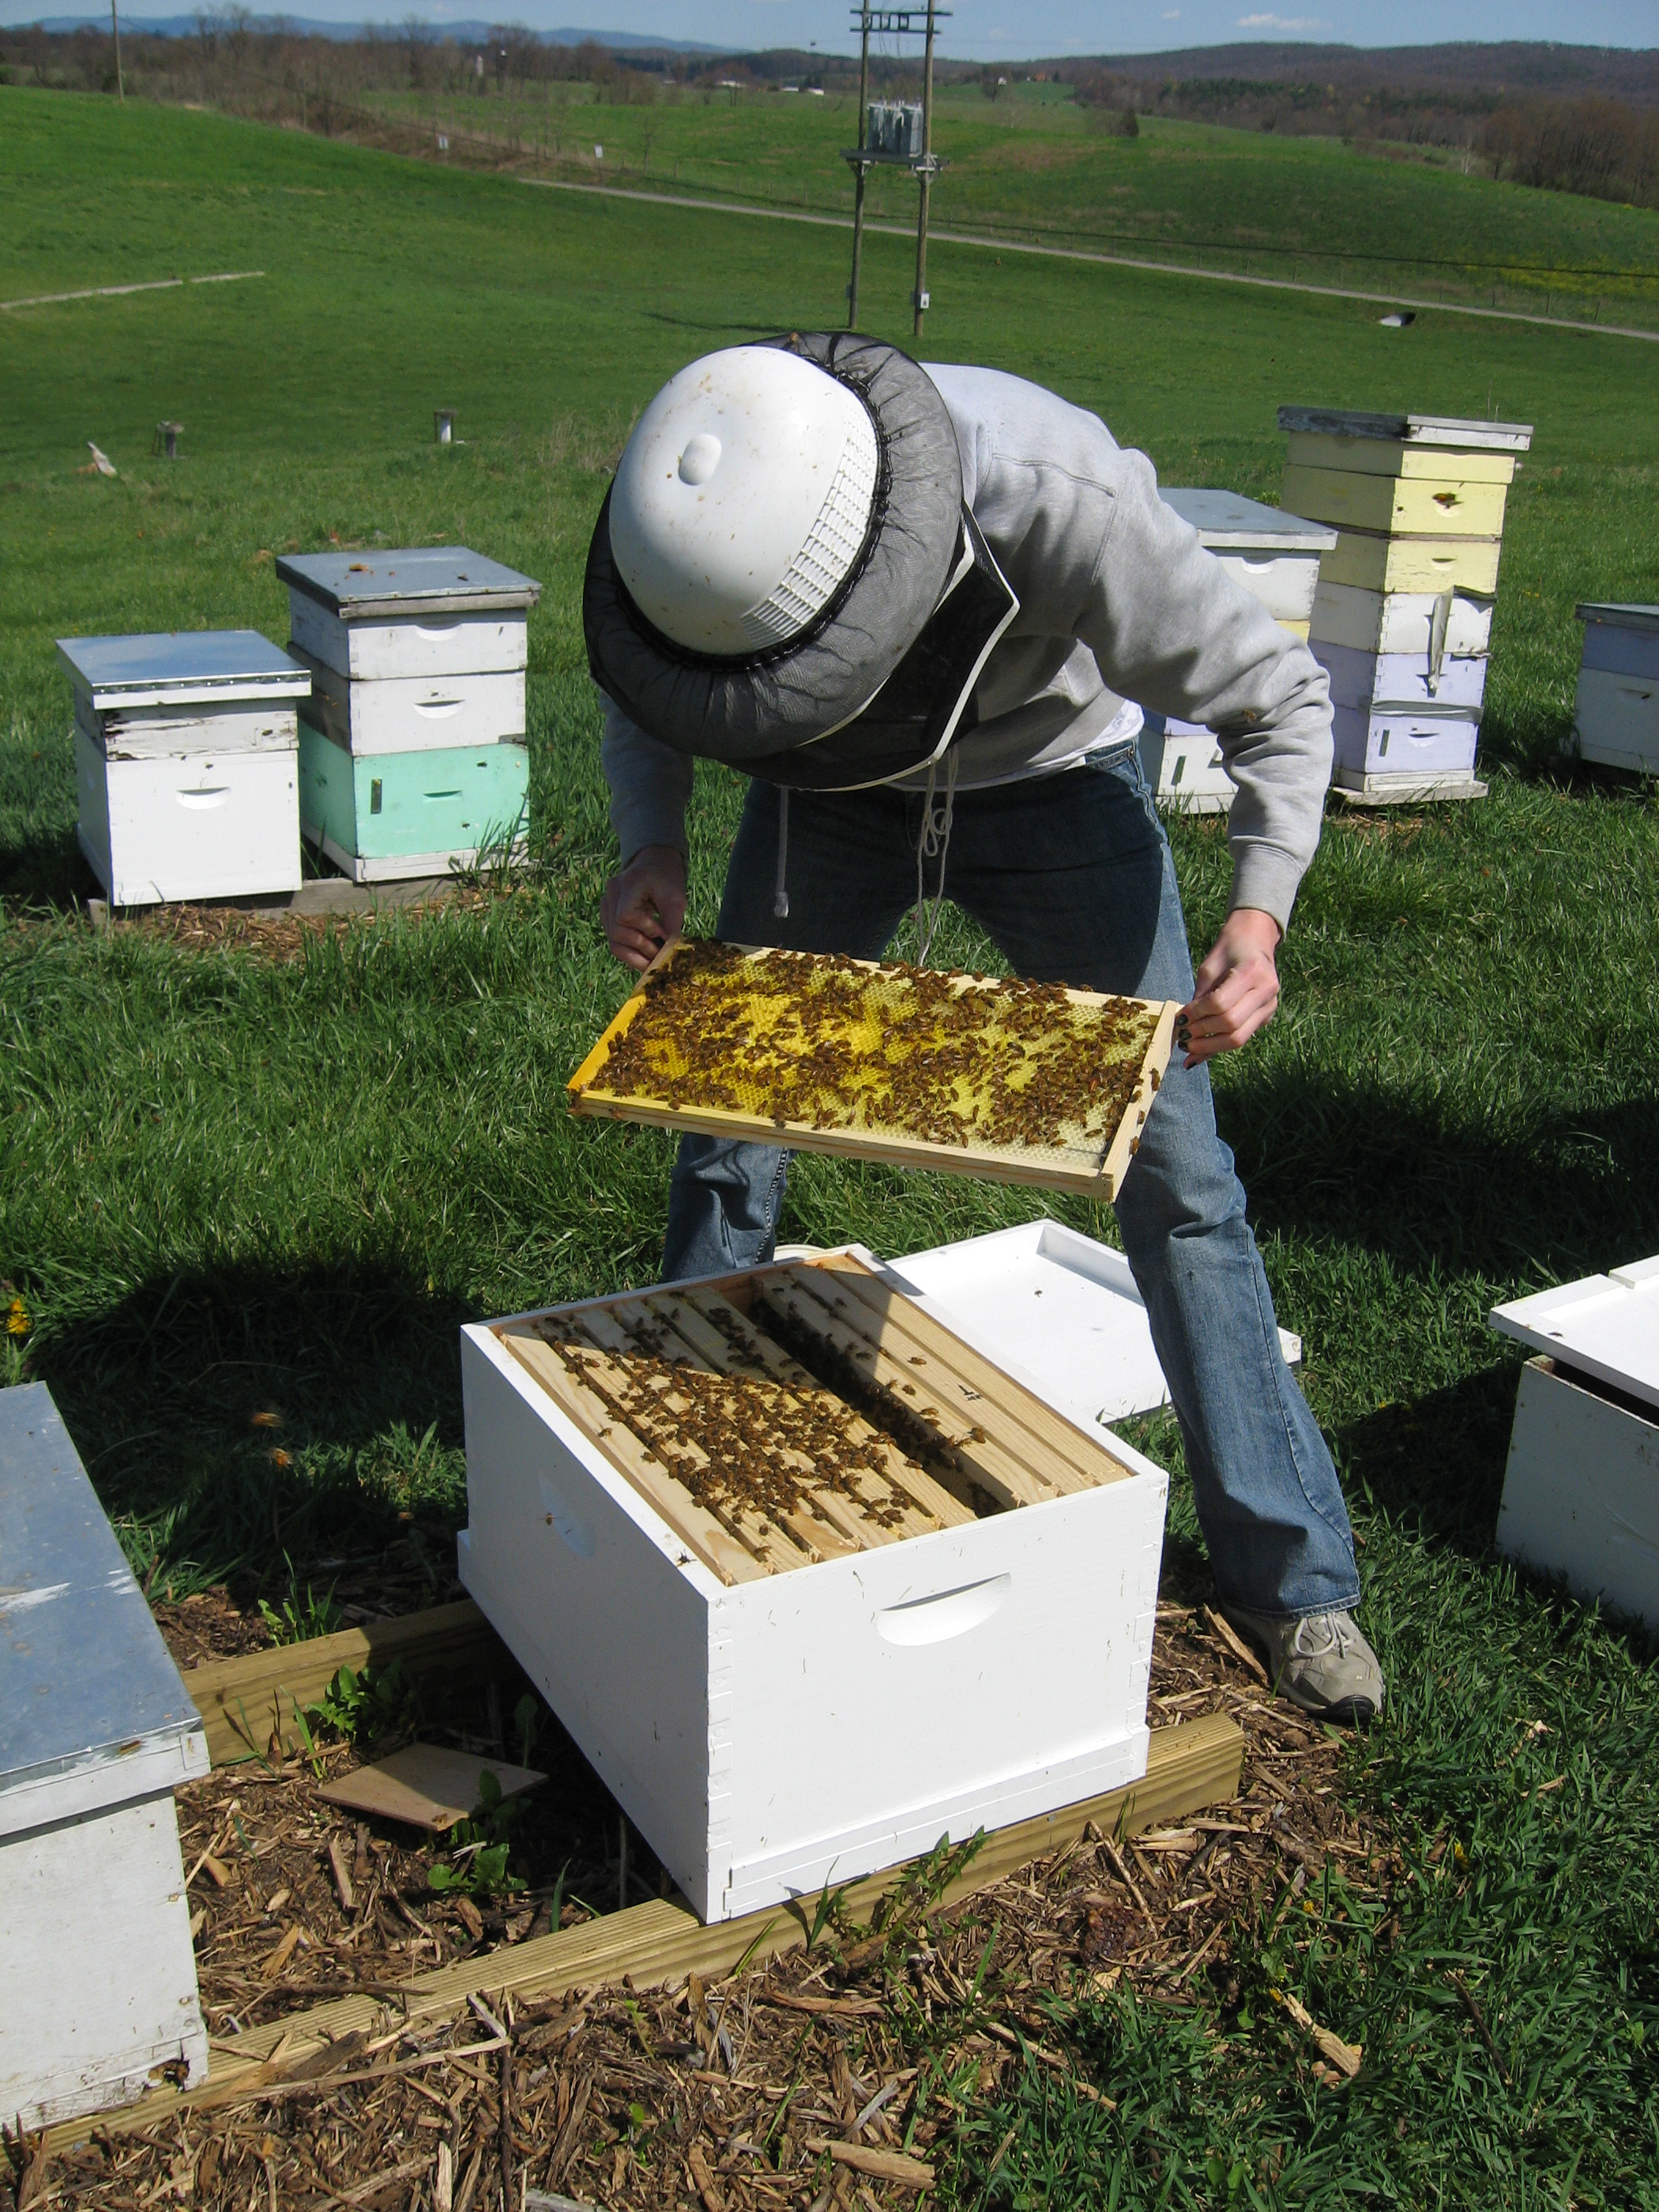 Beekeeper conducting routine hive inspection